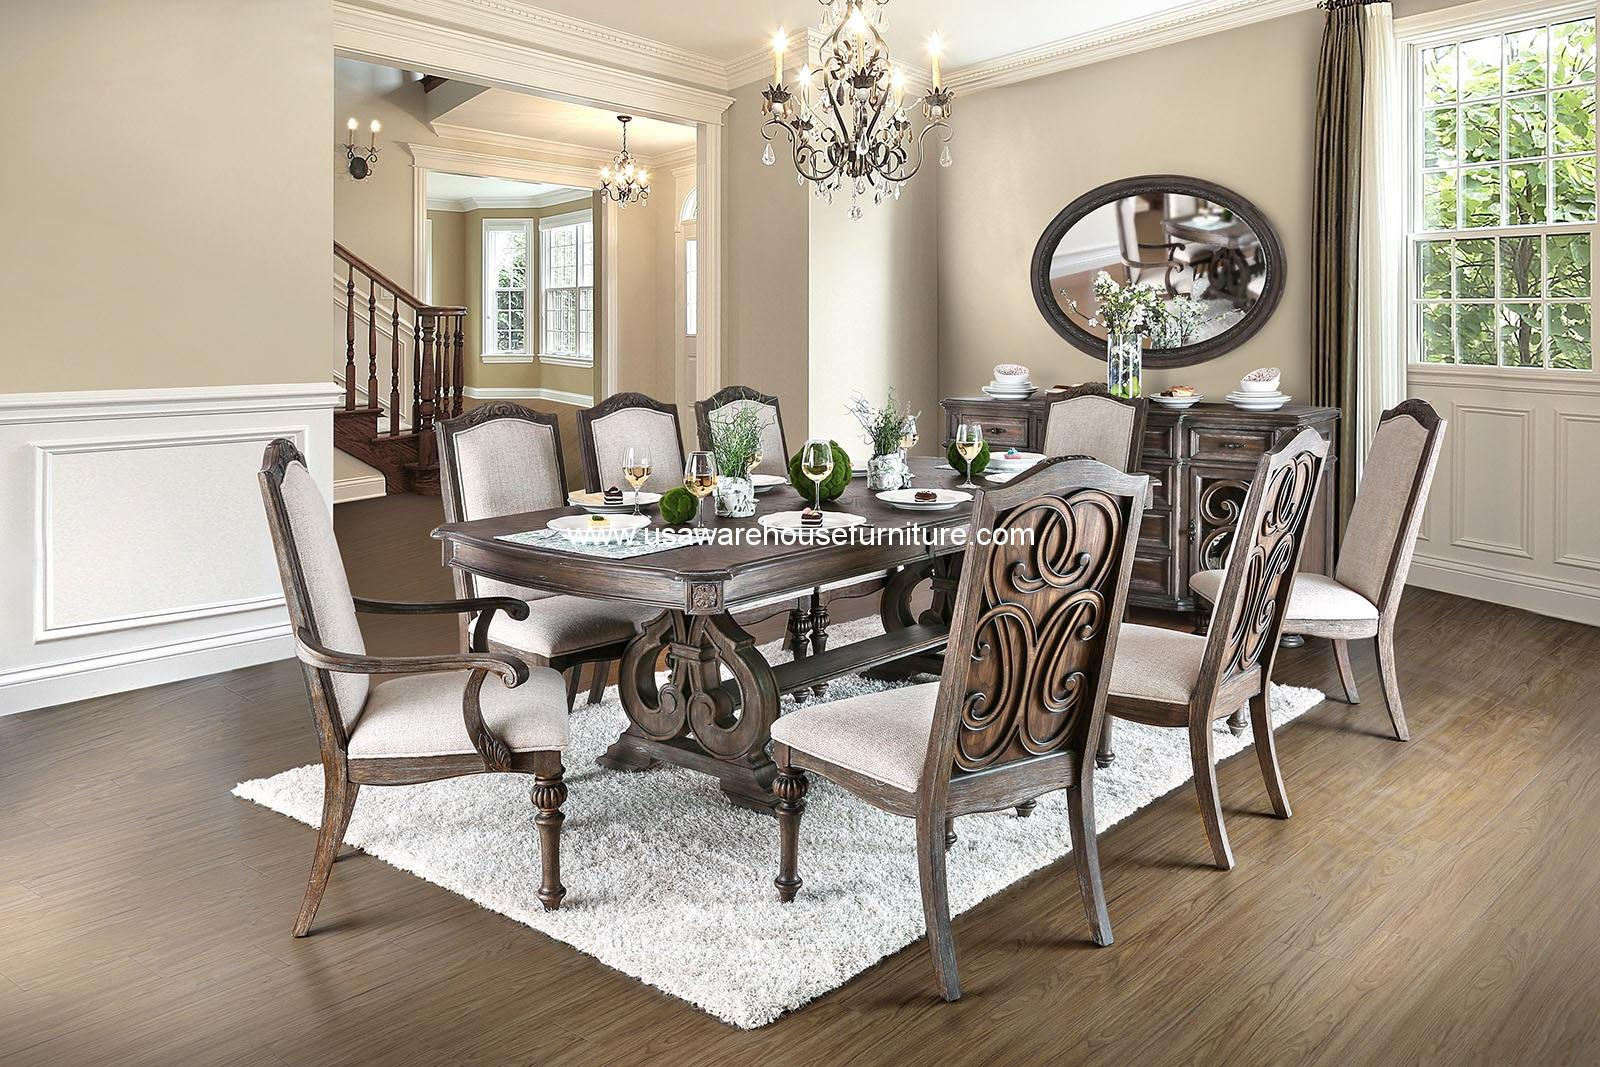 Arcadia Dining Set Rustic Natural Tone Finish